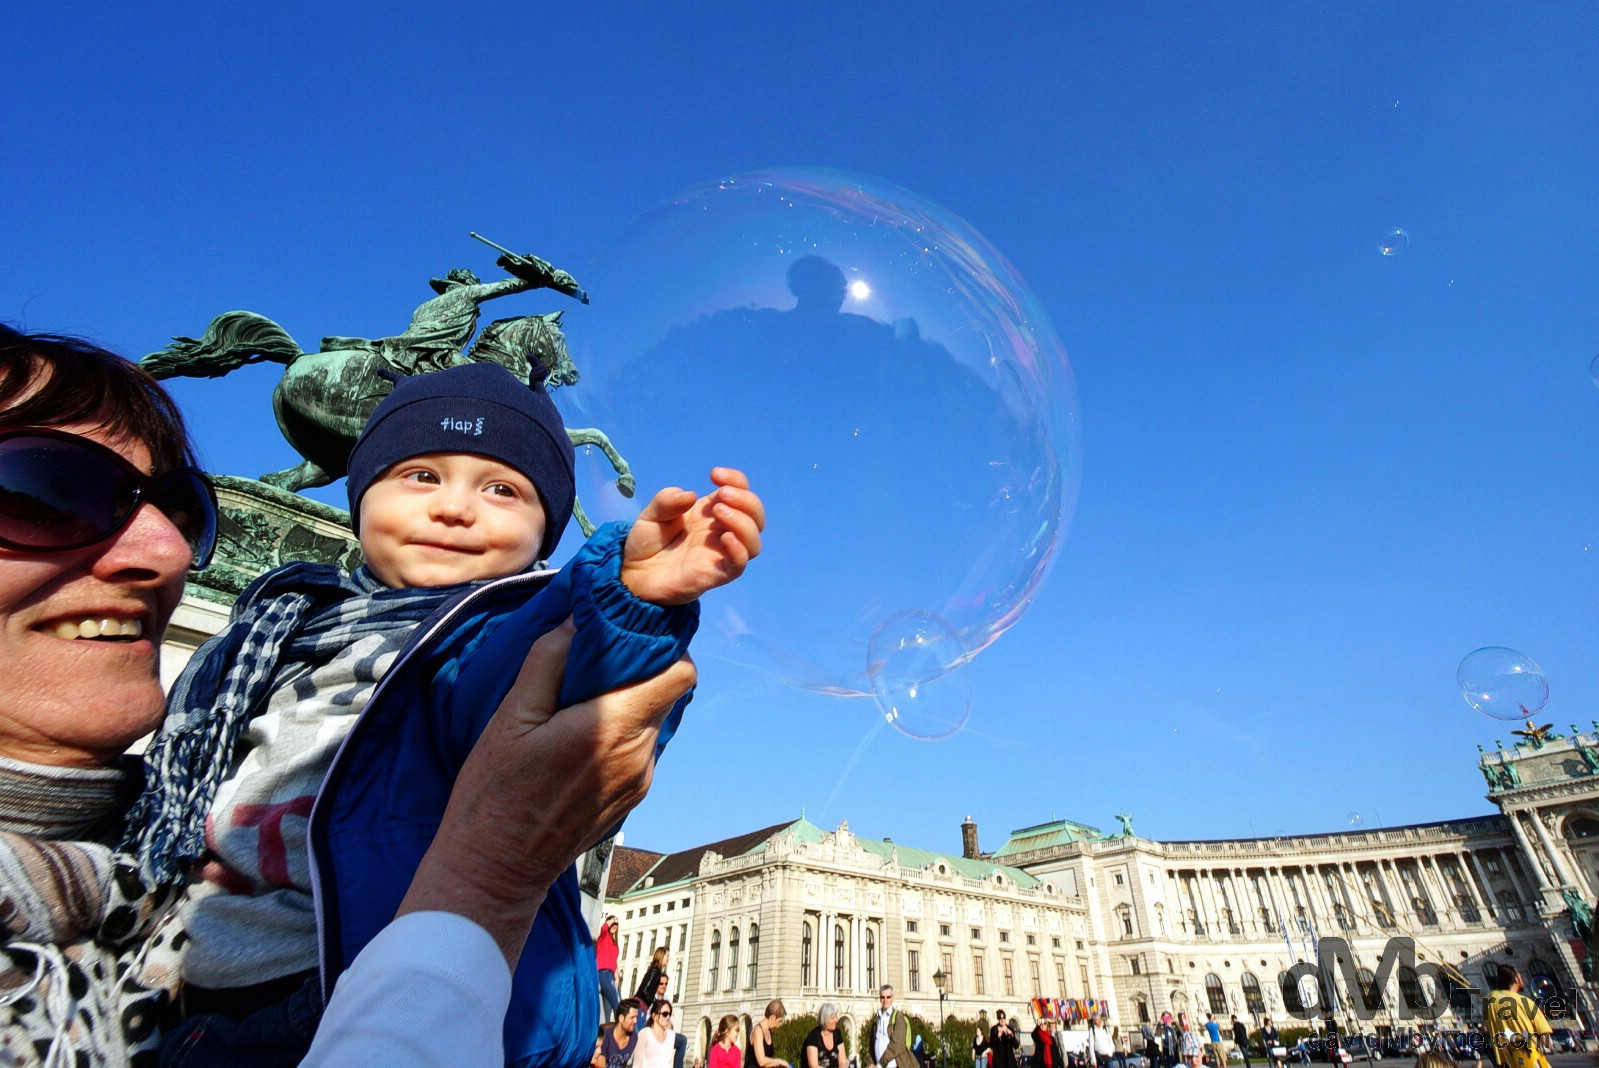 Playing with bubbles in Heldenplatz, Vienna, Austria. March 29th, 2014.